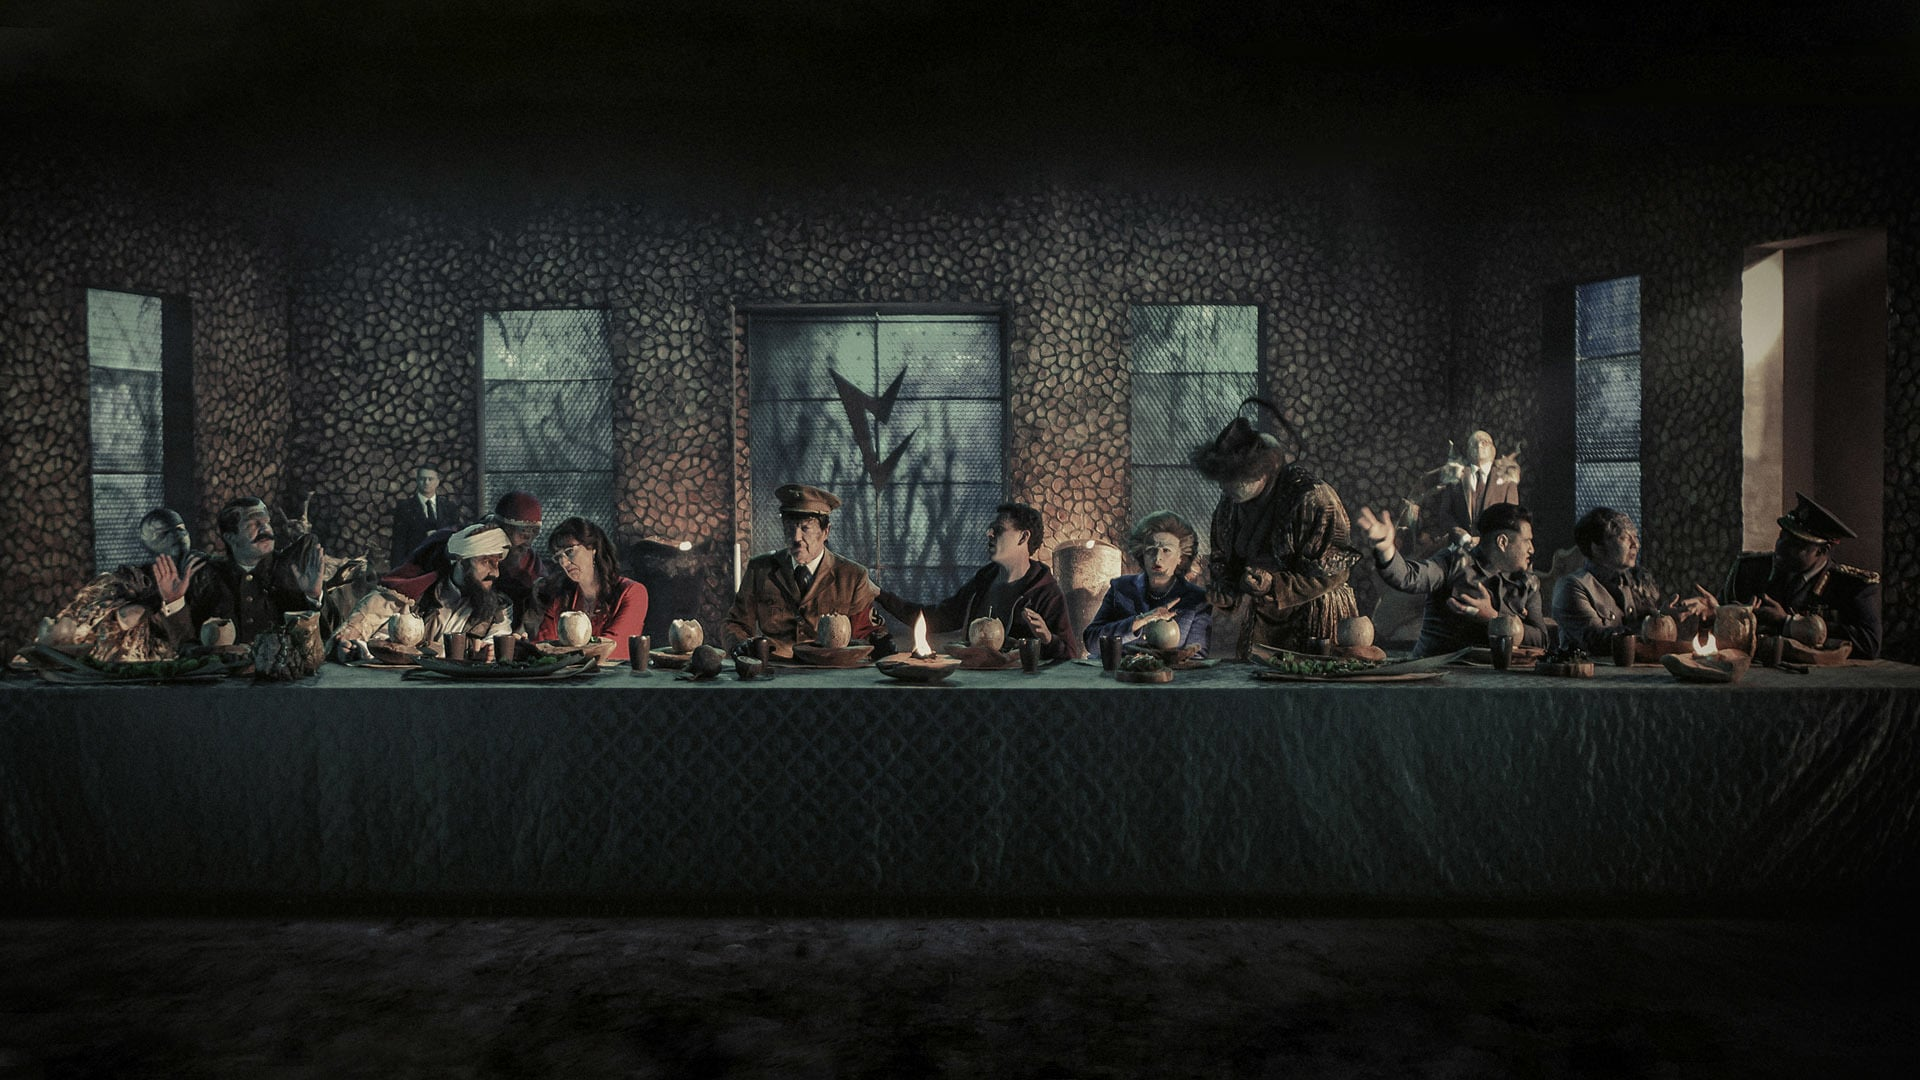 Da Vinci's The Last Supper restaged with alien lizard people in Iron Sky: The Coming Race (2019)